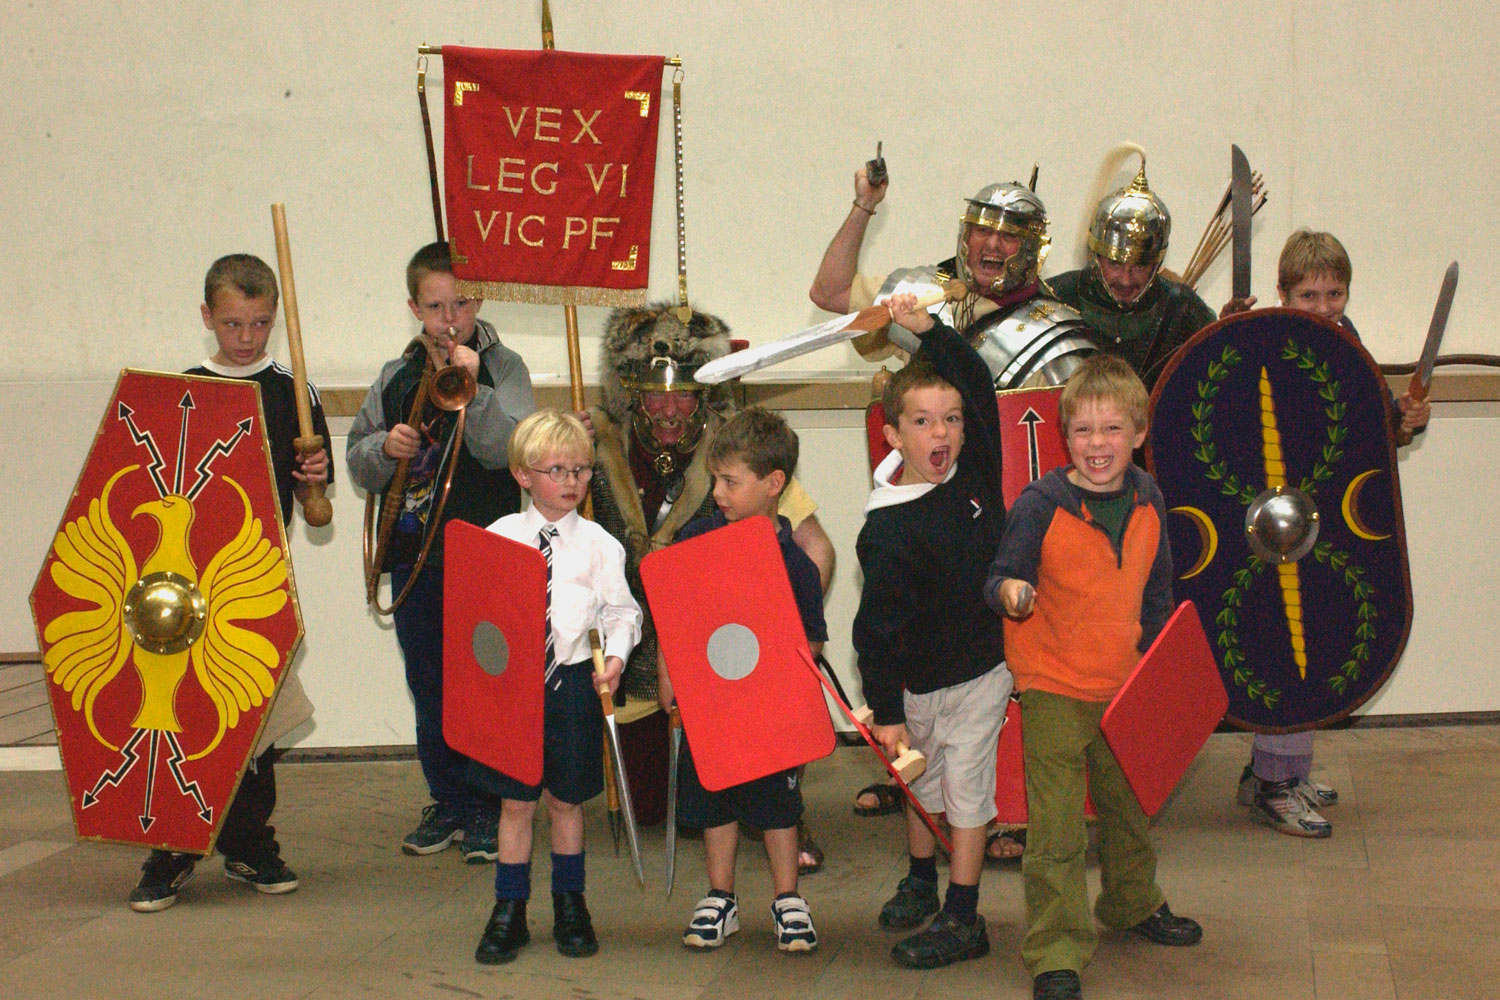 Dressing up as a Roman soldier